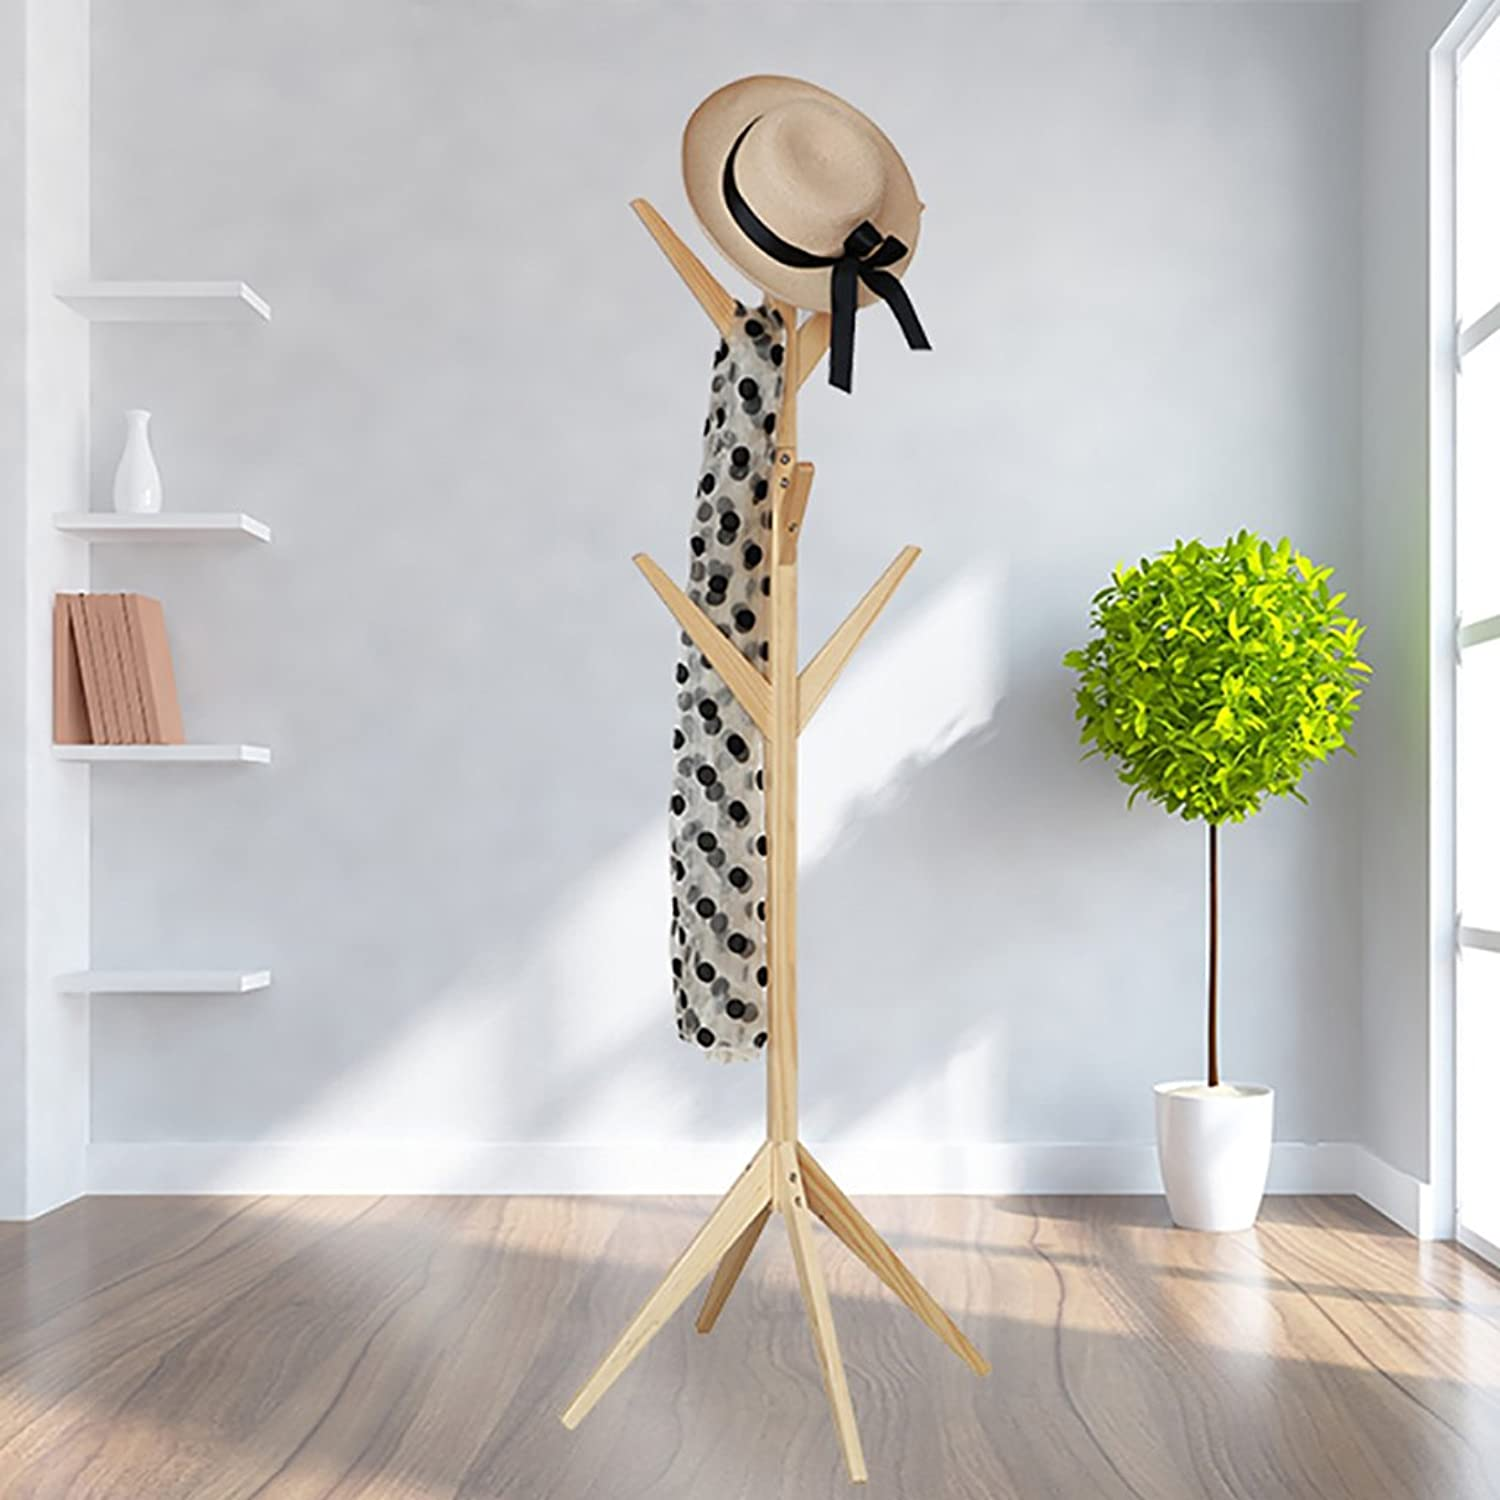 July Coat Rack Simple Solid Wood Fall Coat Rack Living Room Bedroom Hanging Hanger Modern Creative Home Clothing Shelf